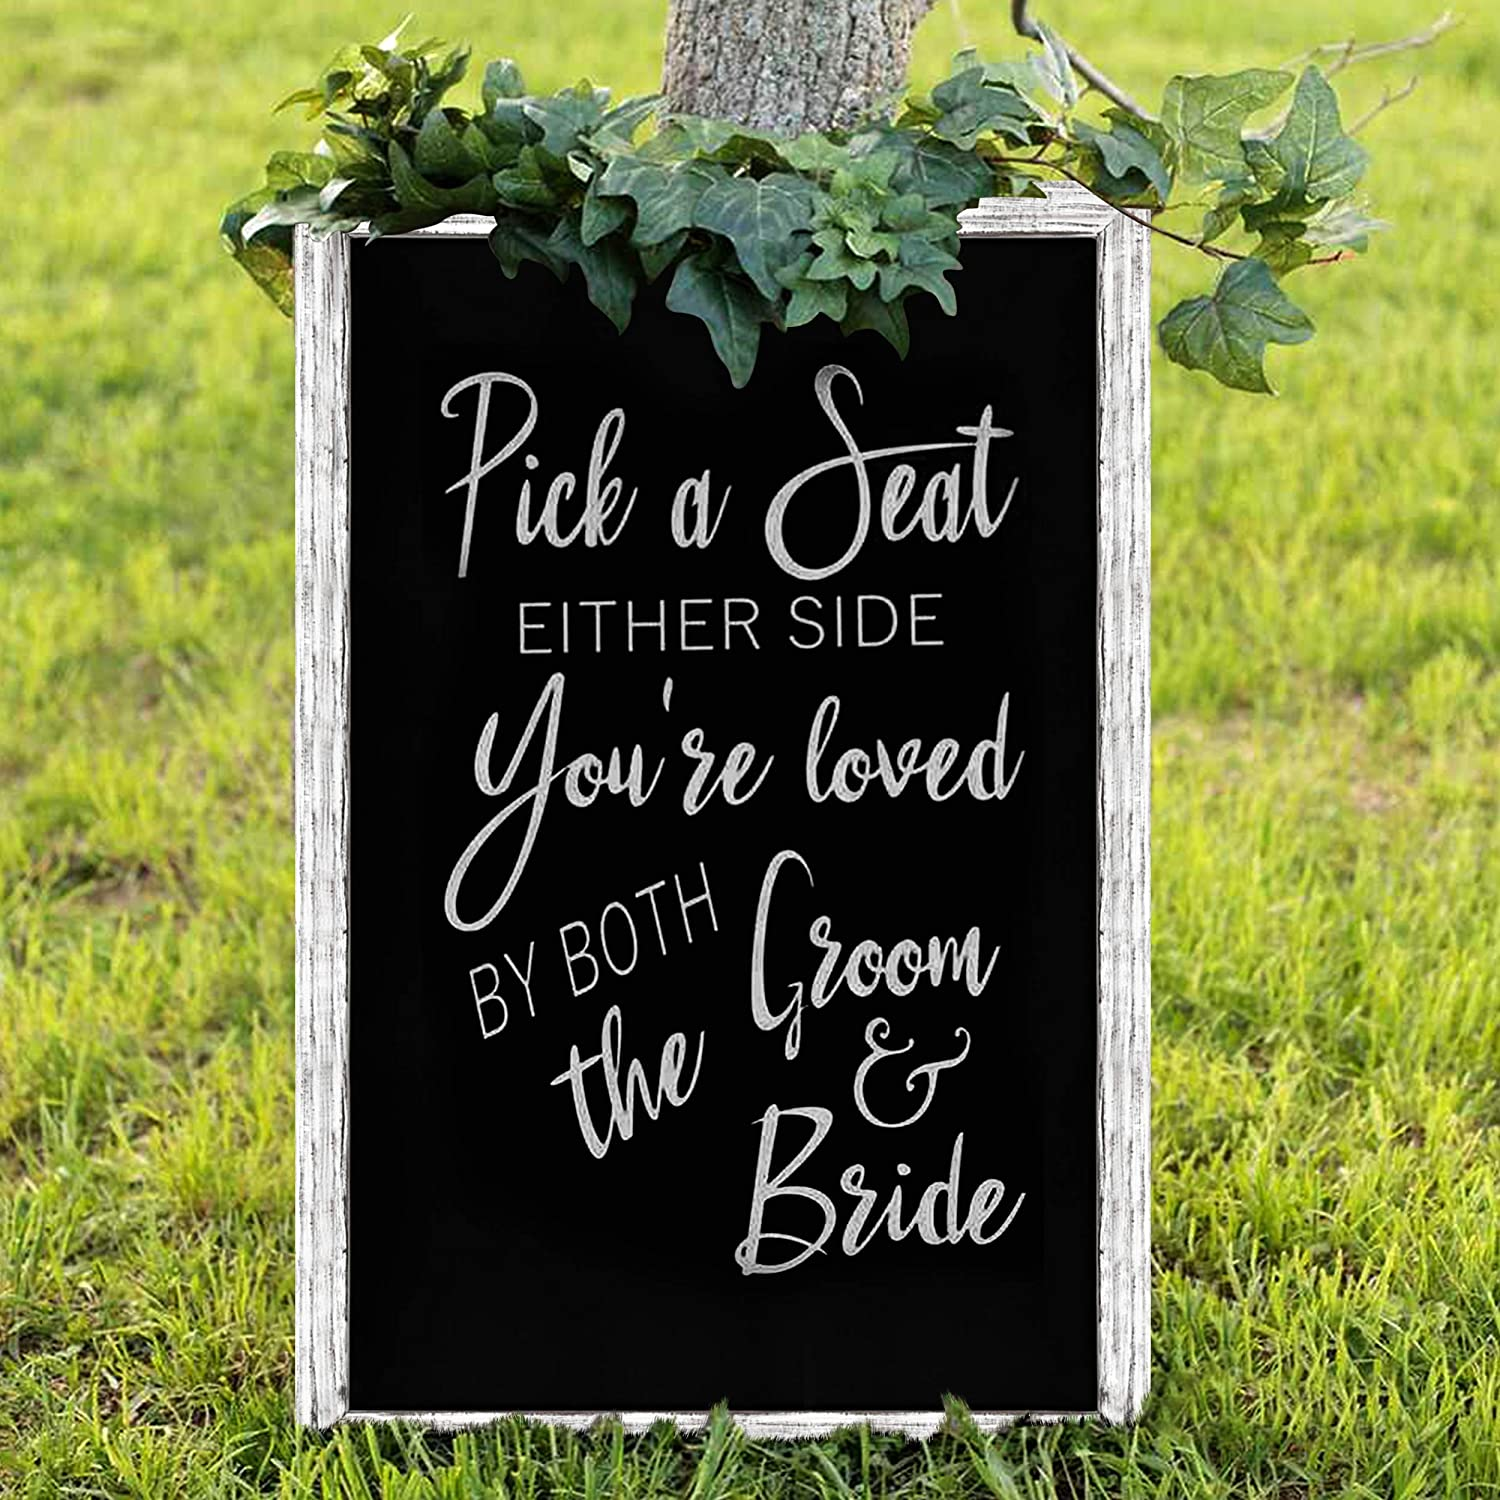 """TenXVI Designs 24""""x36"""" Magnetic Chalkboard Sign and 1 Liquid Chalk Marker - Decorative Blackboard for Weddings, Farmhouses, Restaurants and Home Decor - No Legs - Rustic White: Office Products"""